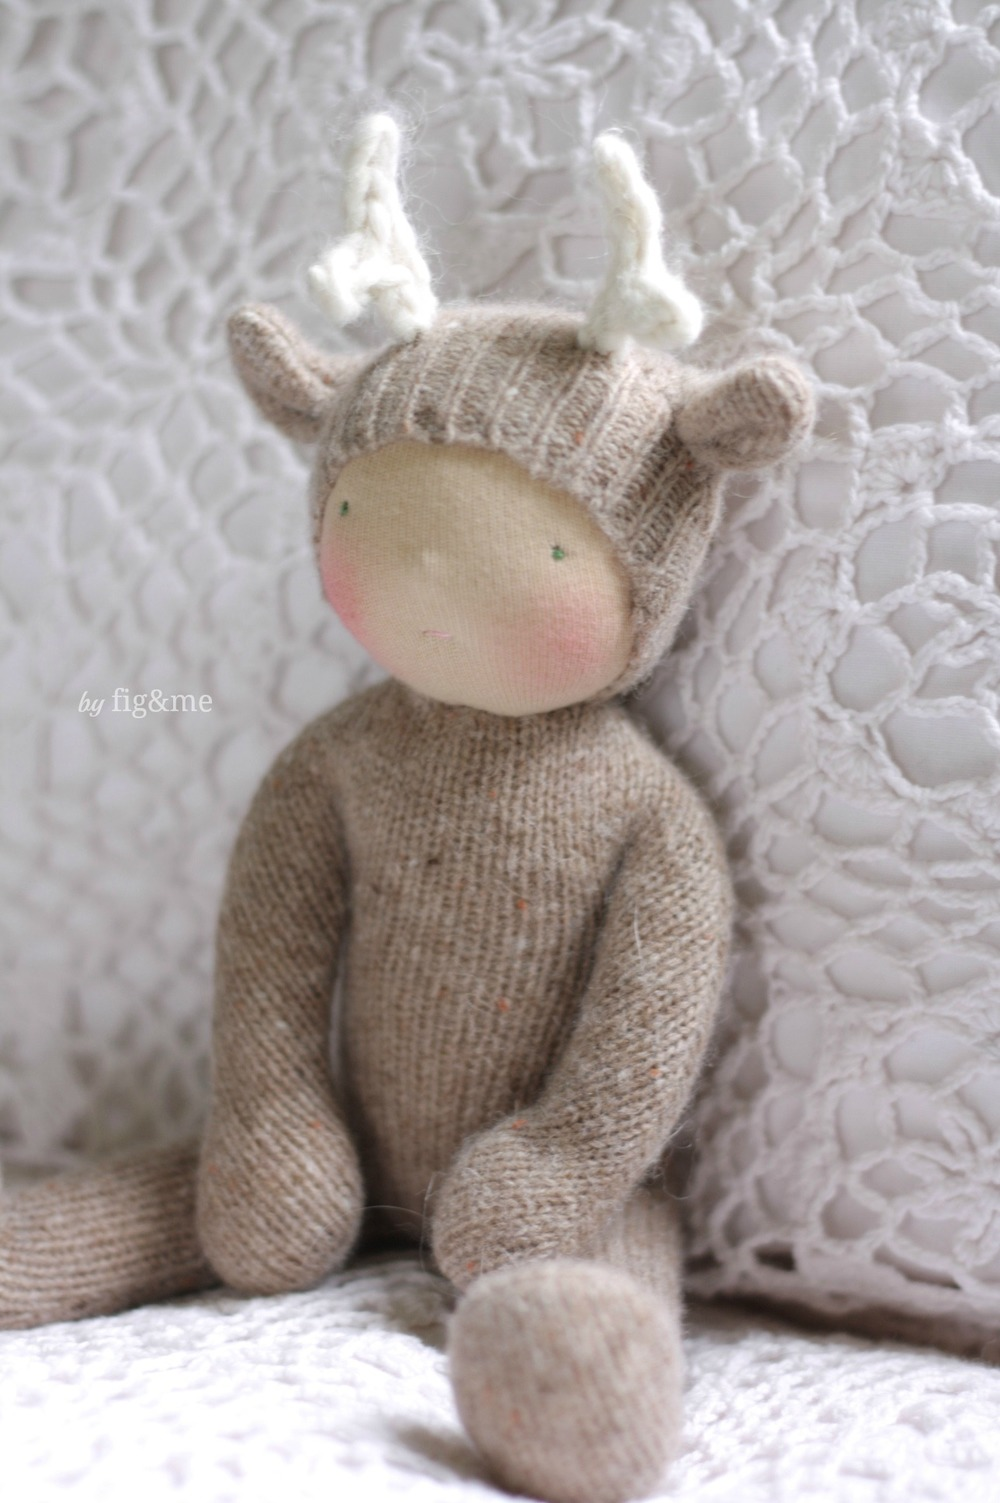 Miss Lara, a Wee Baby deer by Fig&me